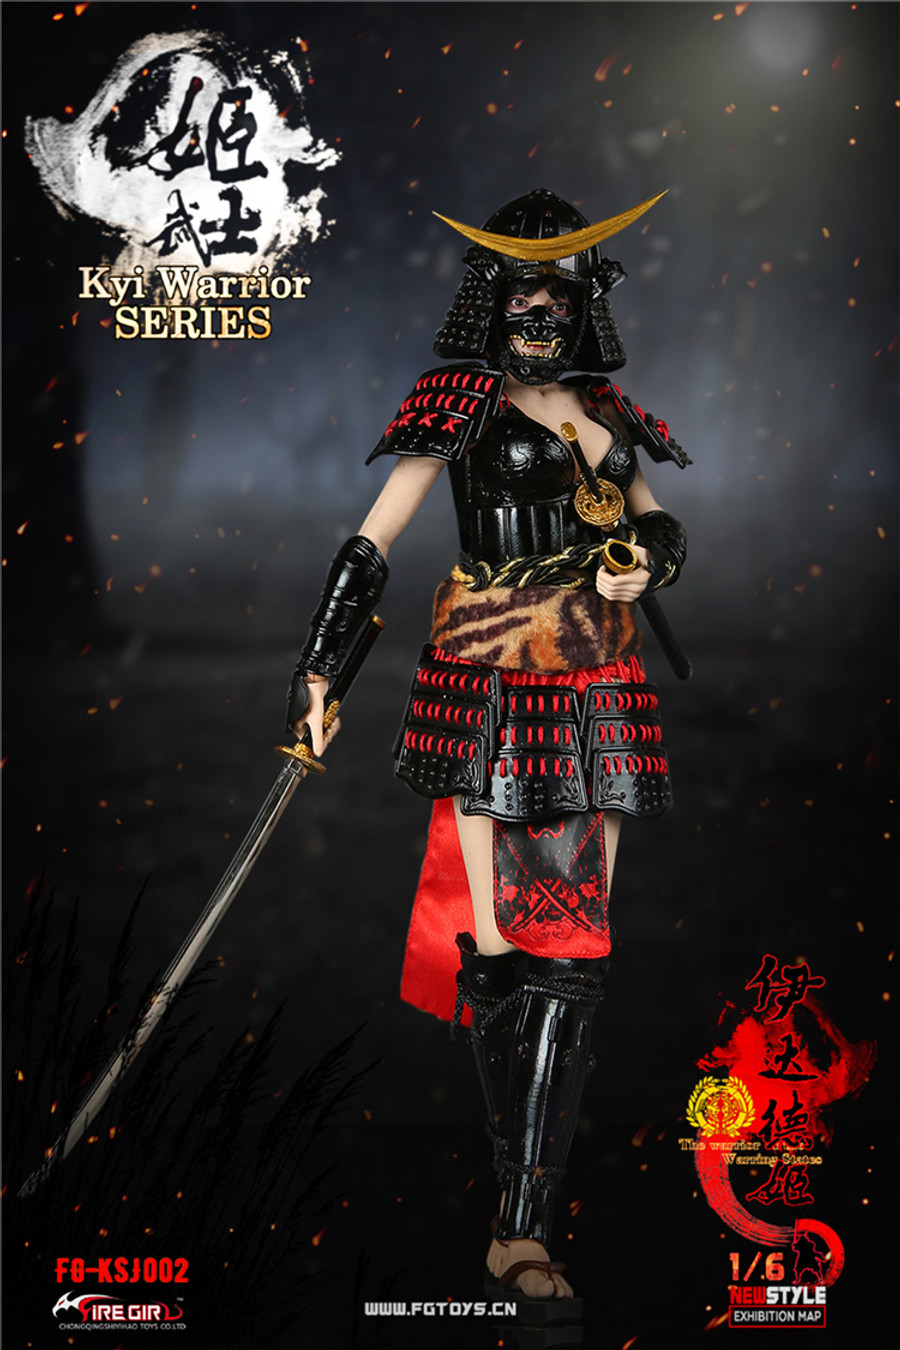 Fire Girl Toys - Warring States of Japanese Women: Warrior Suit Eadda Tokuhime - Black